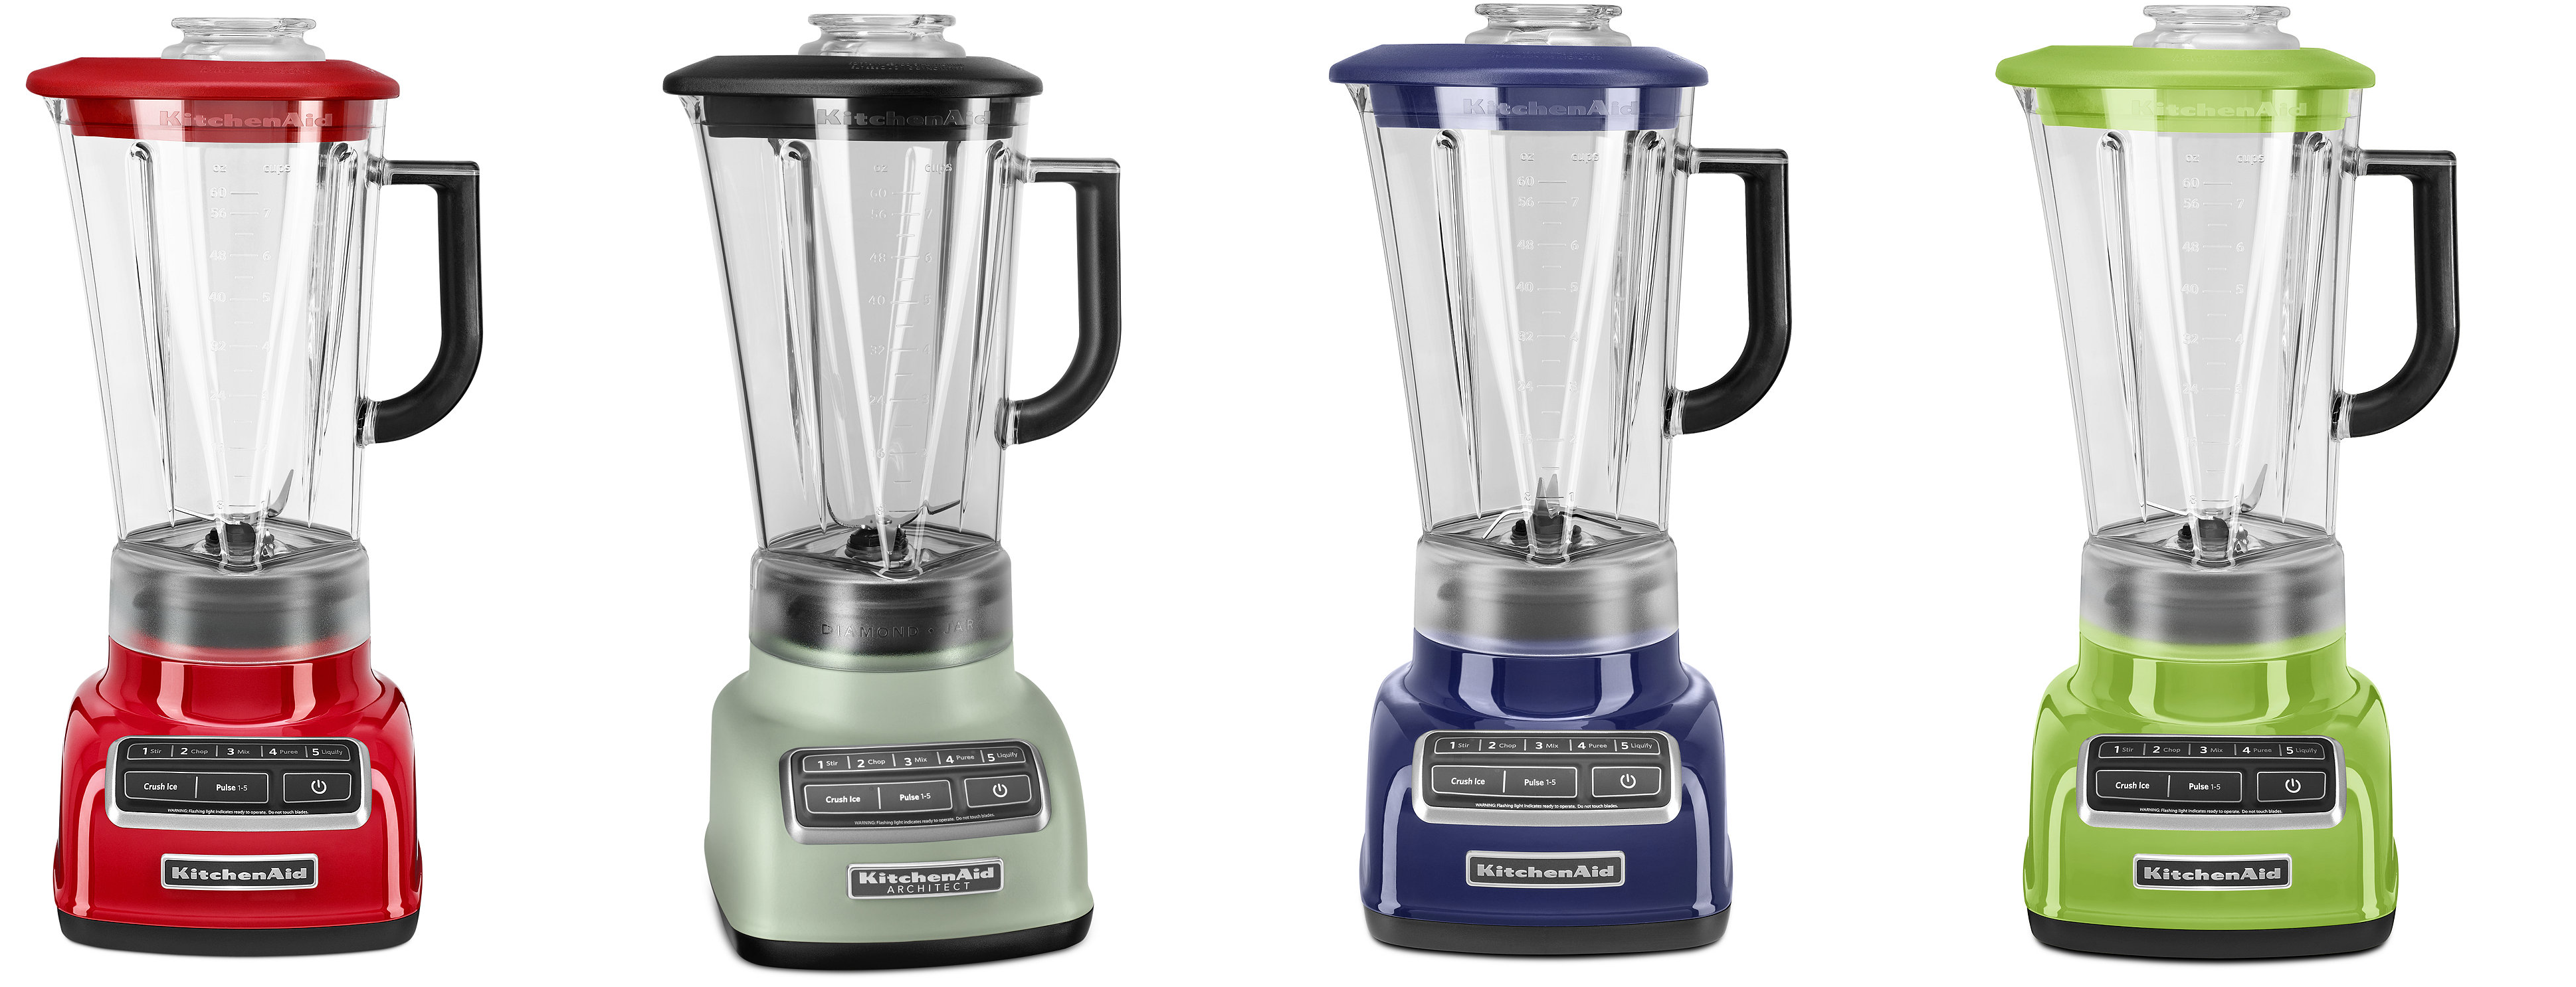 Kitchenaid 5 Speed Blender today only: kitchenaid architect or diamond 5-speed blender only